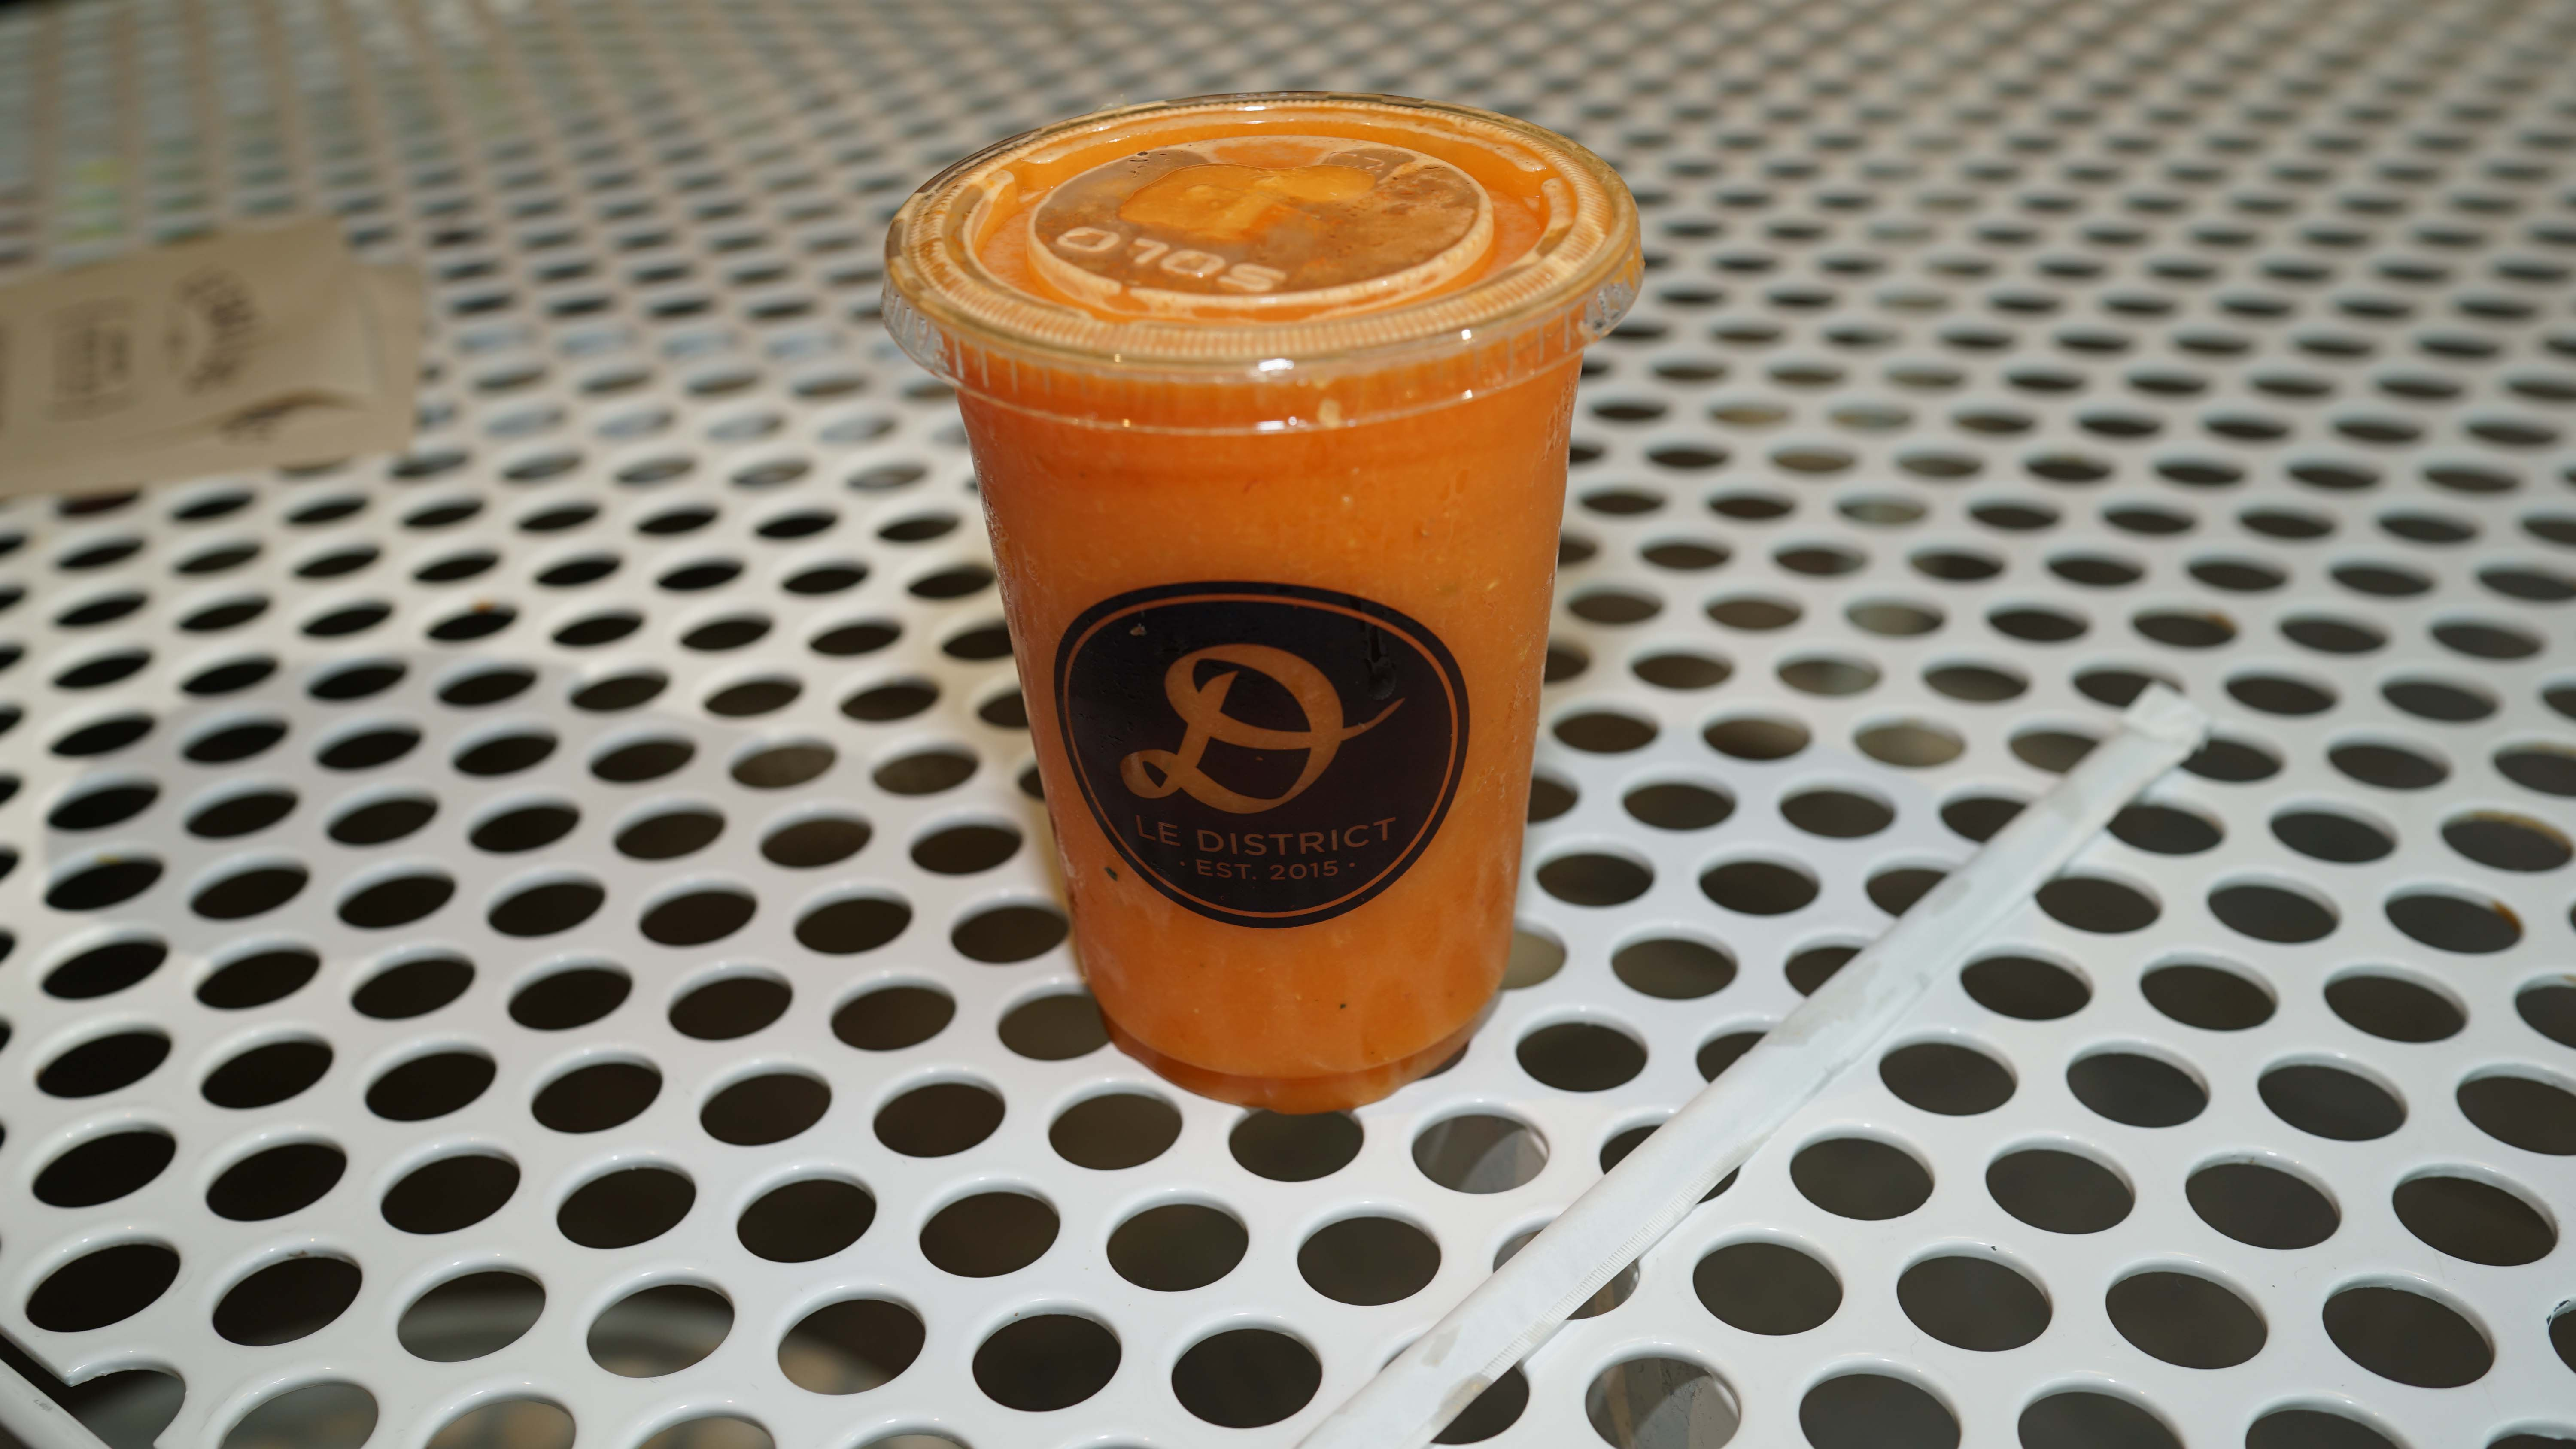 Le District carrot juice